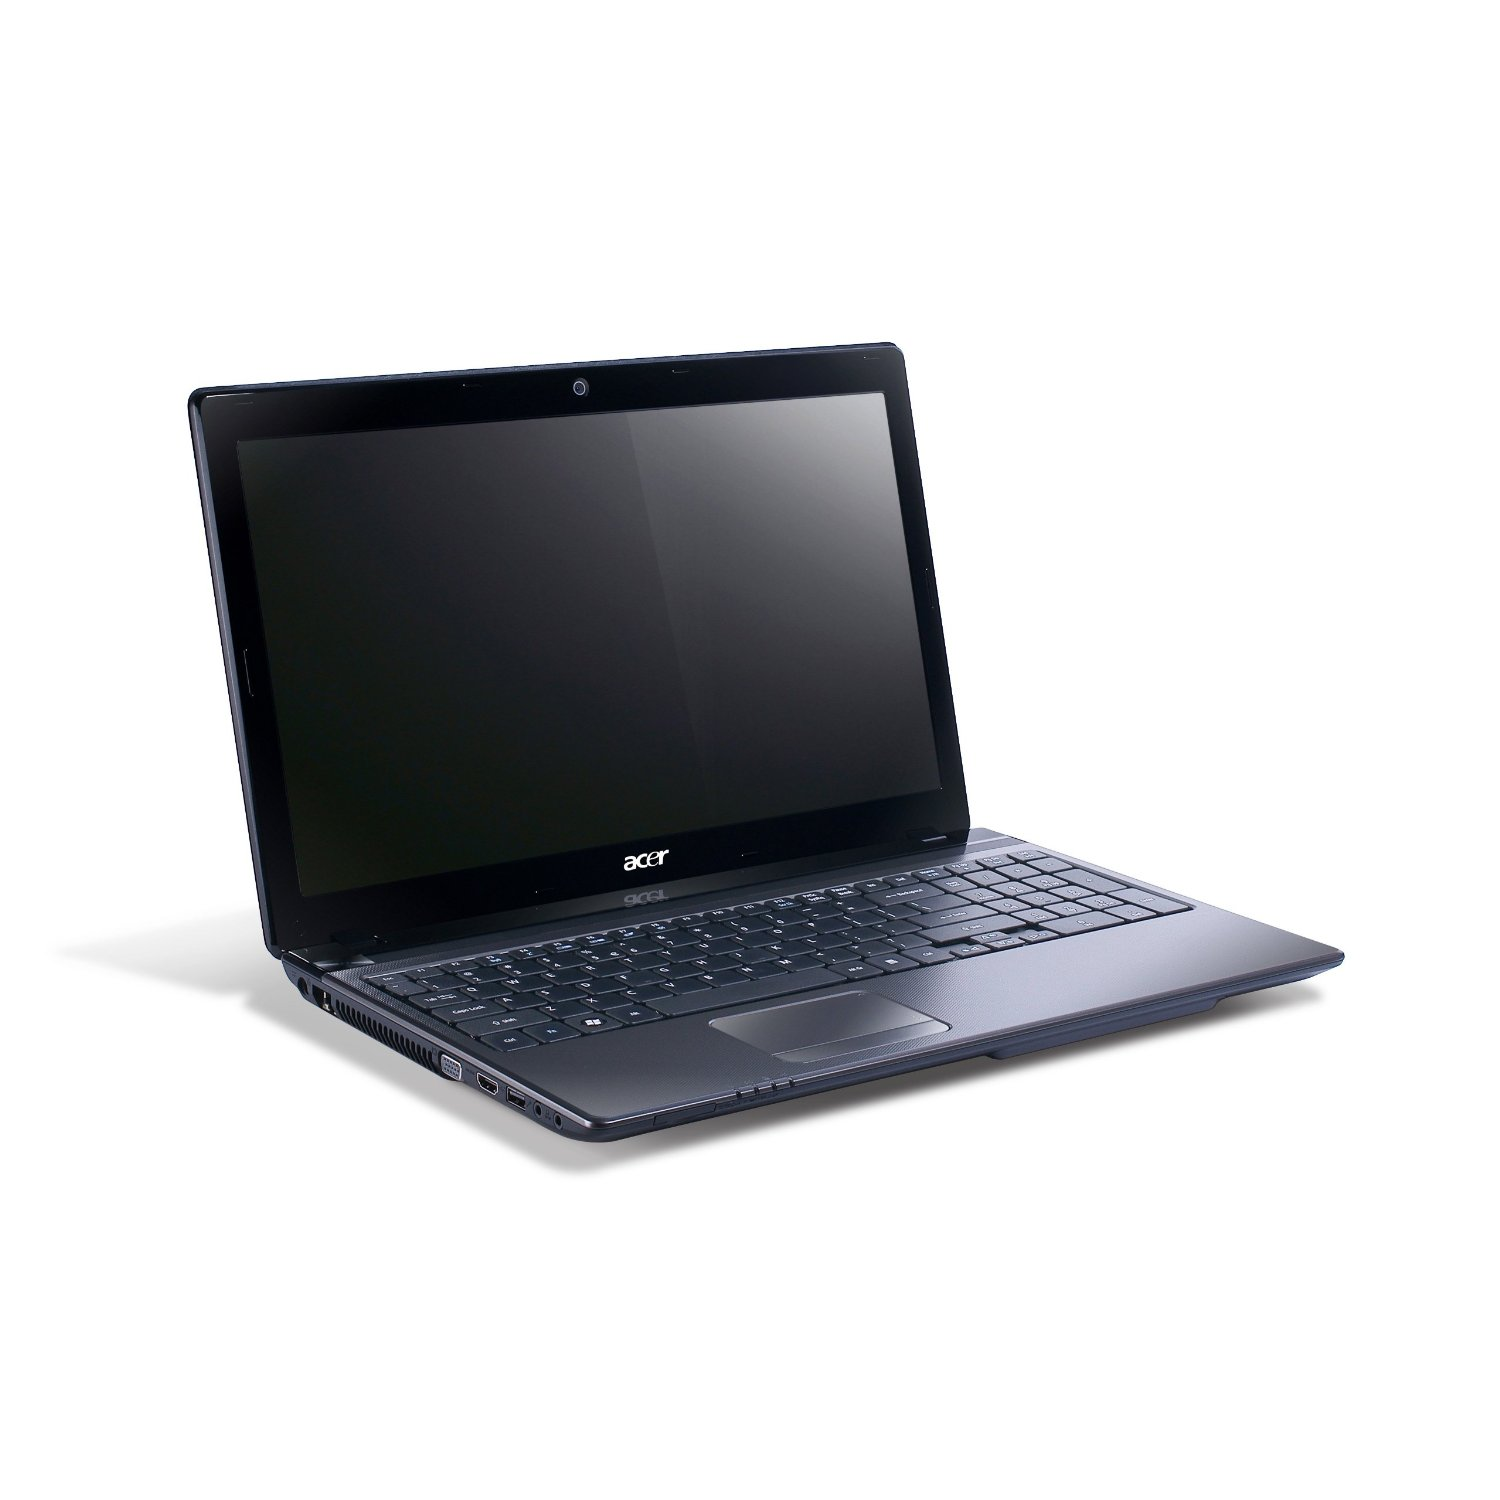 Acer Aspire 5750g Notebook Pc Review Spec Laptopspricereview